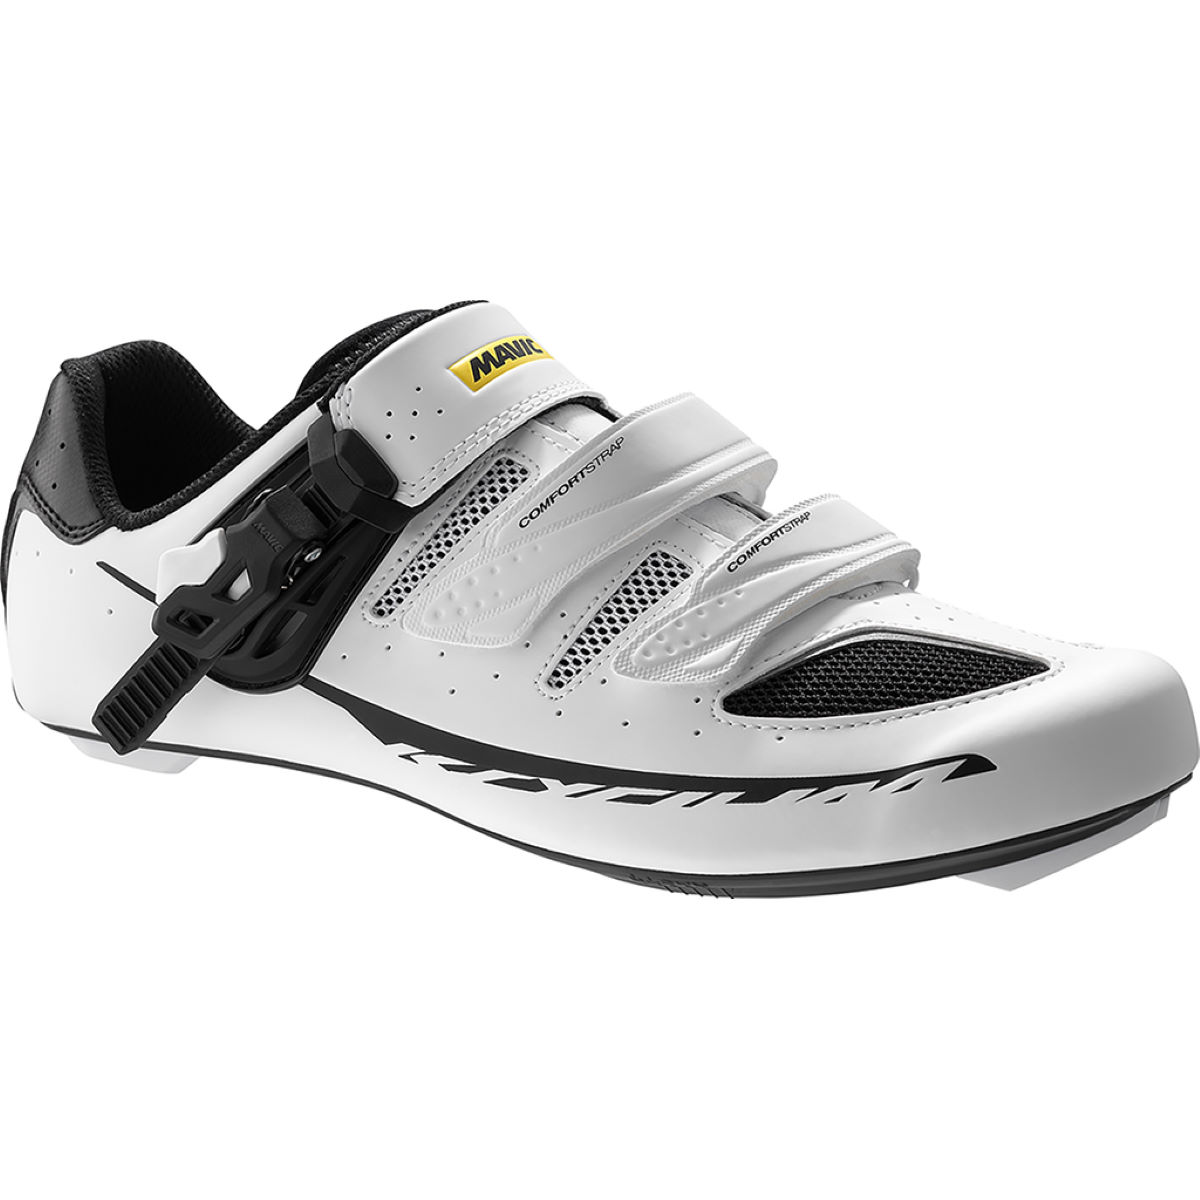 Chaussures Mavic Ksyrium Elite Maxi Fit II - 7,5 UK Blanc Chaussures de route